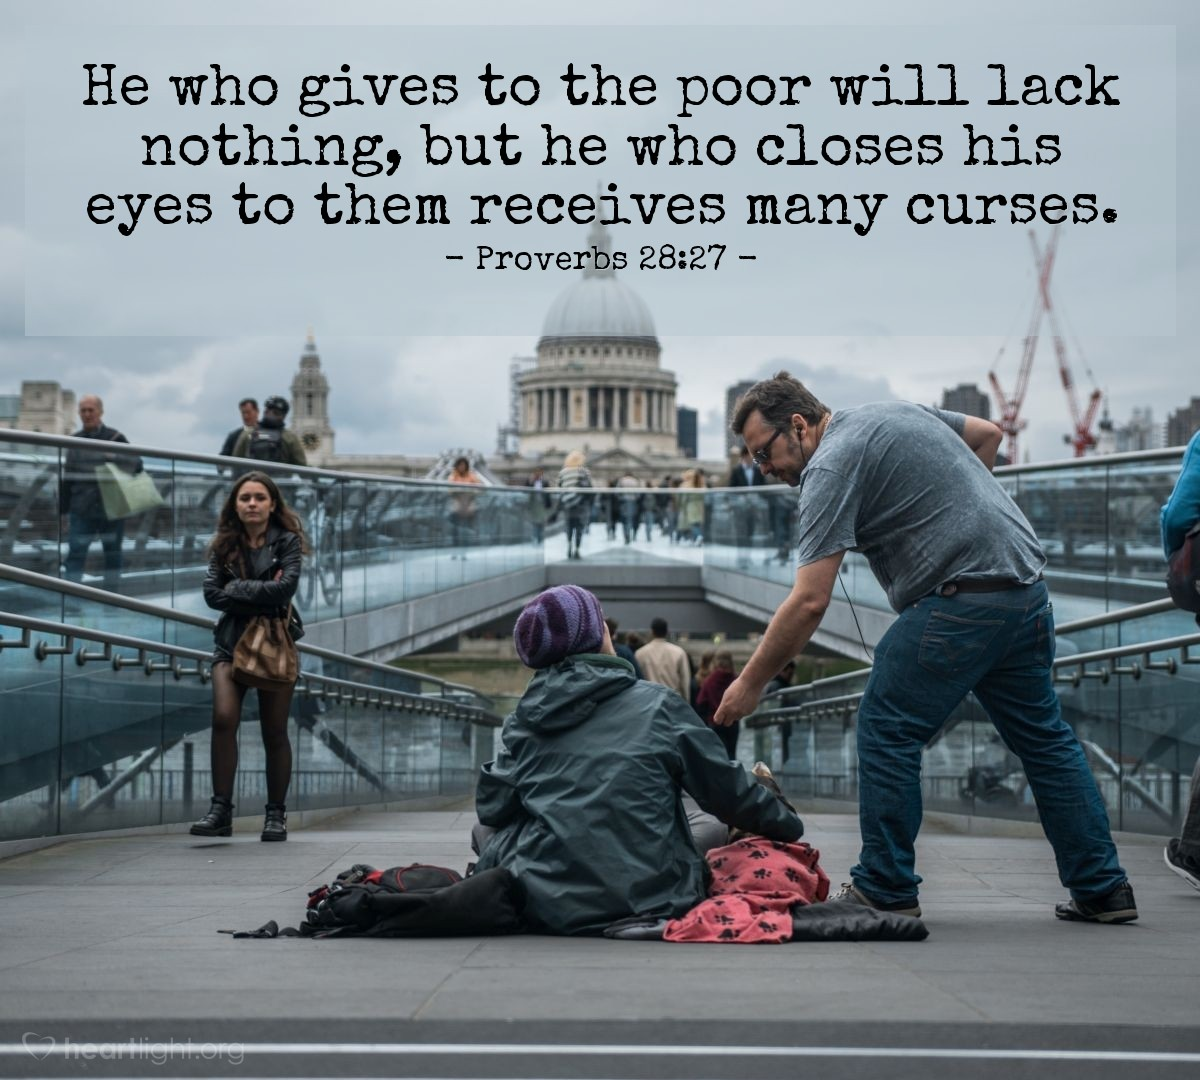 Illustration of Proverbs 28:27 — He who gives to the poor will lack nothing, but he who closes his eyes to them receives many curses.